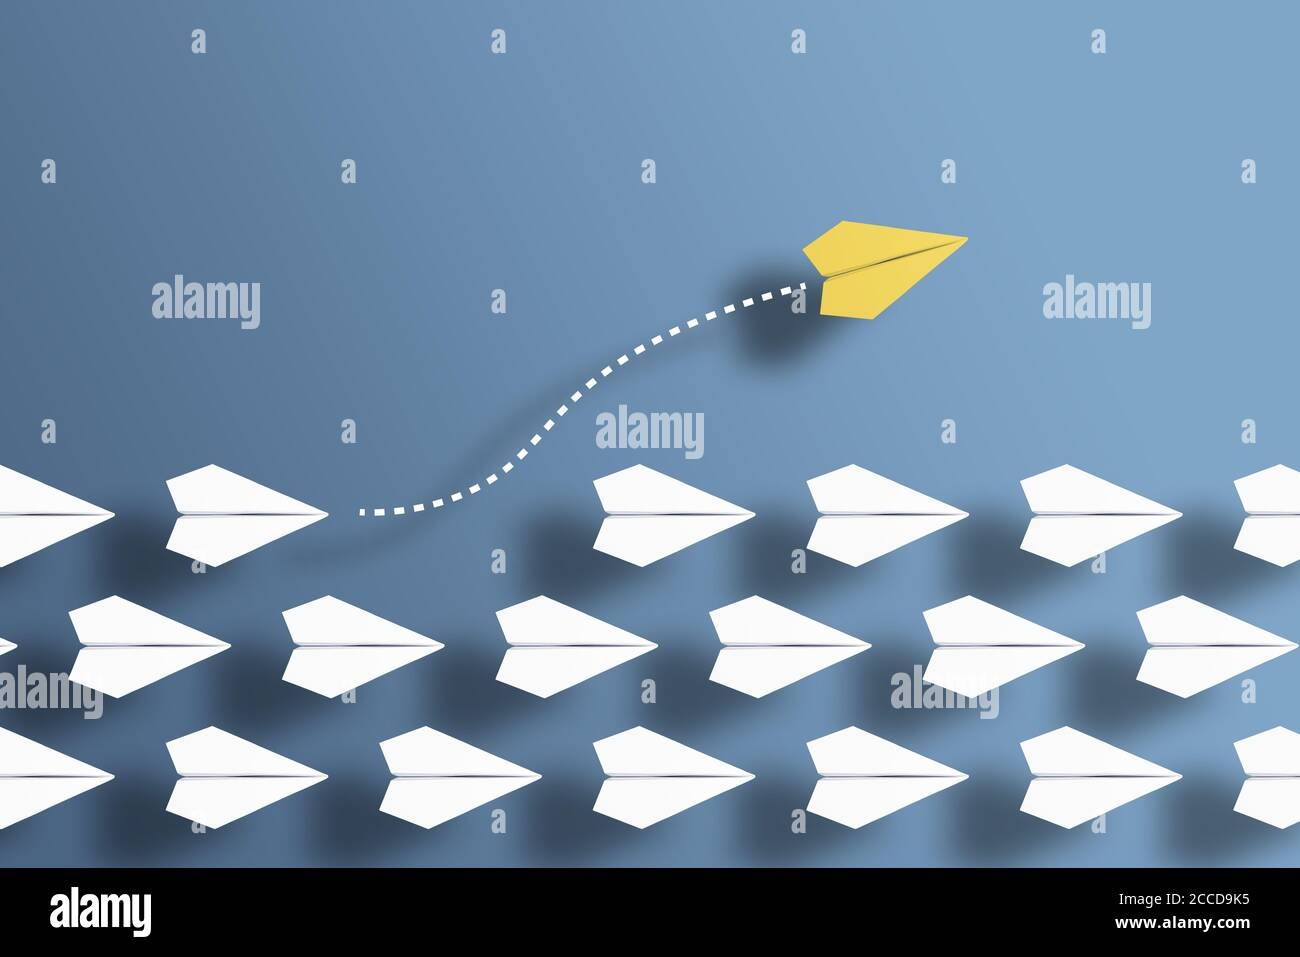 paper planes in a row on blue background and one paper glider going in different direction, breaking new ground and stepping out of the line concept Stock Photo